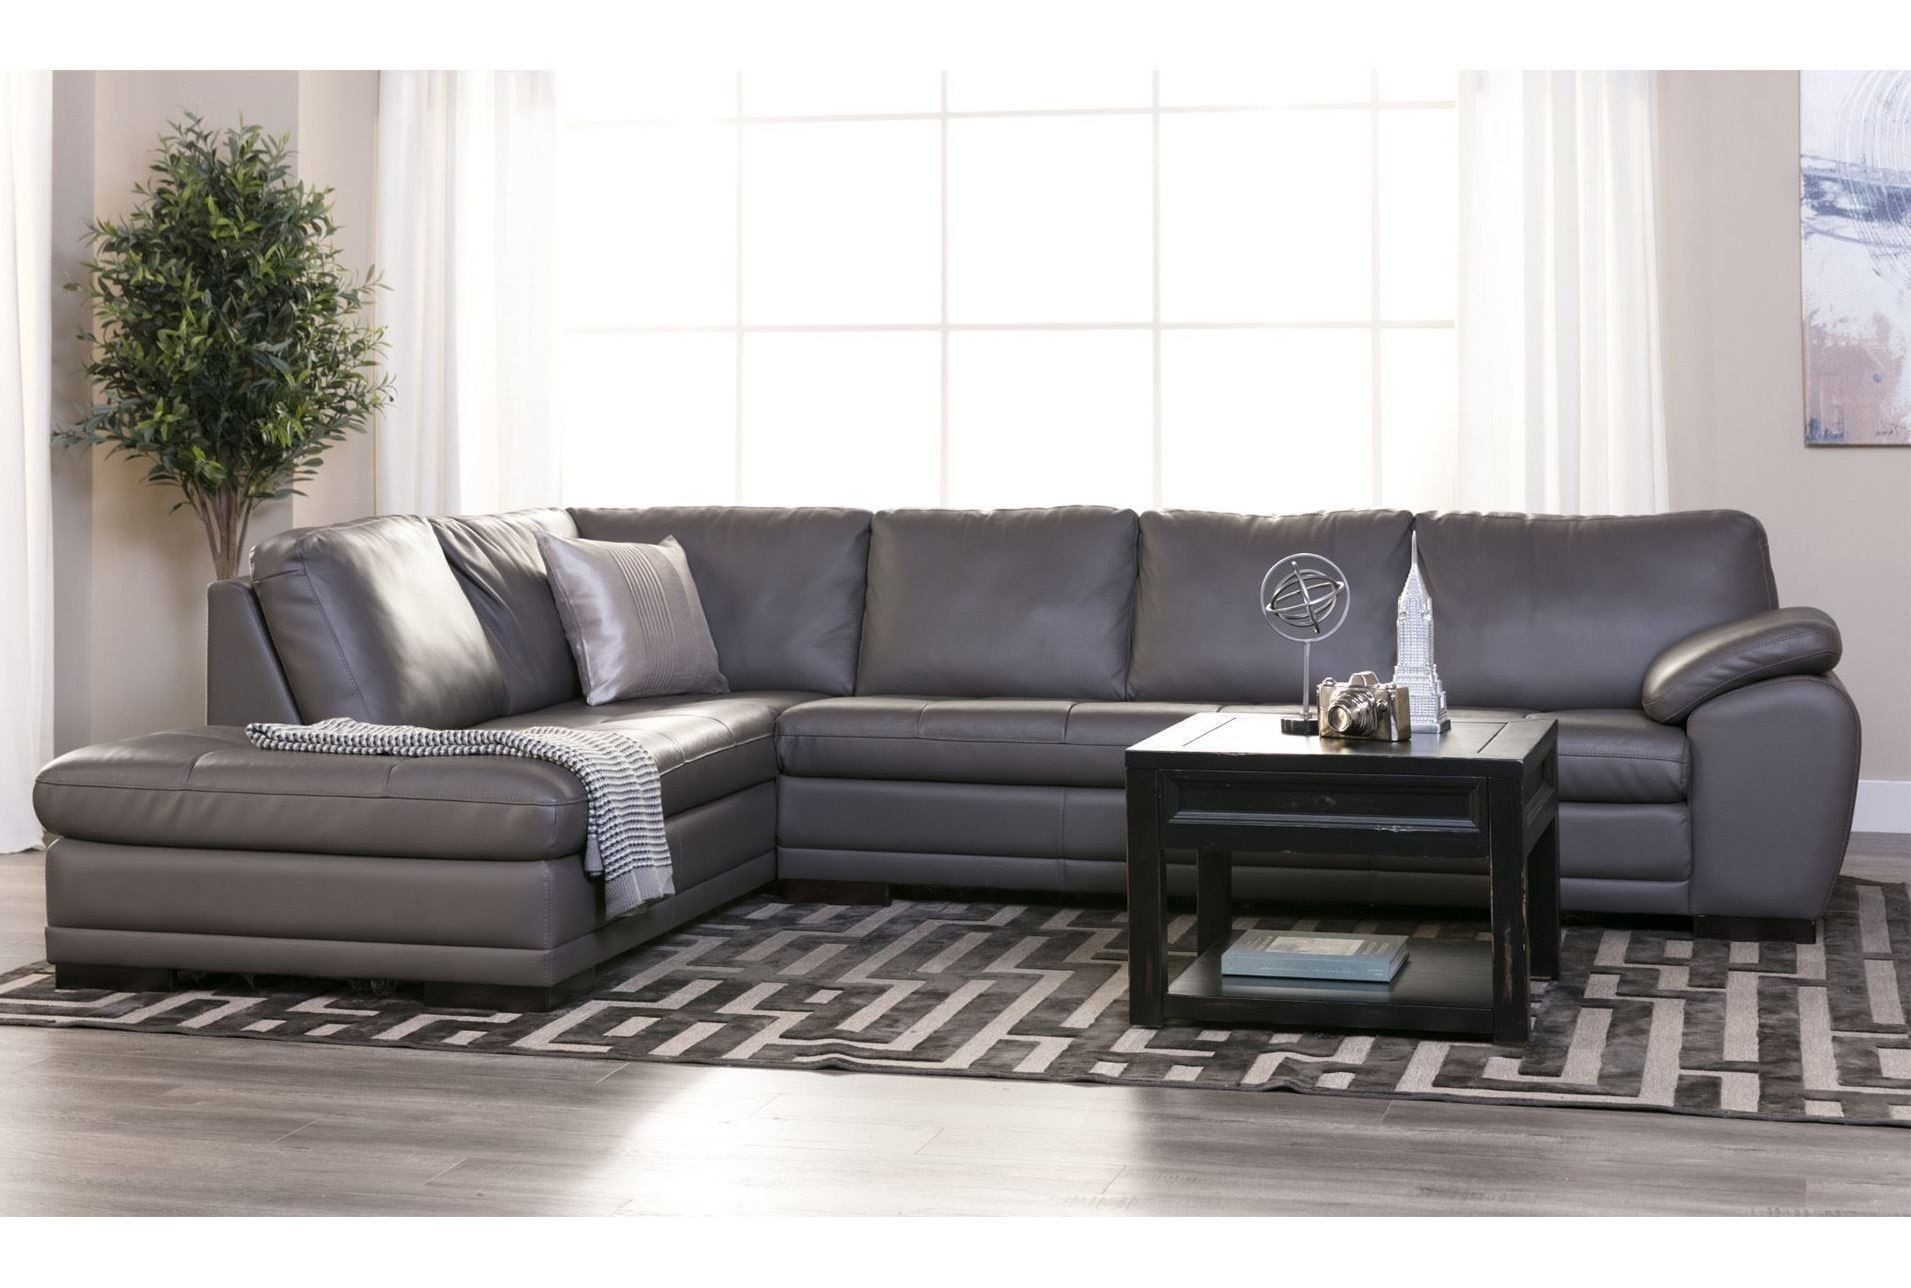 Living Spaces Leather Sectional - Implantologiabogota.co with Gordon 3 Piece Sectionals With Raf Chaise (Image 21 of 30)